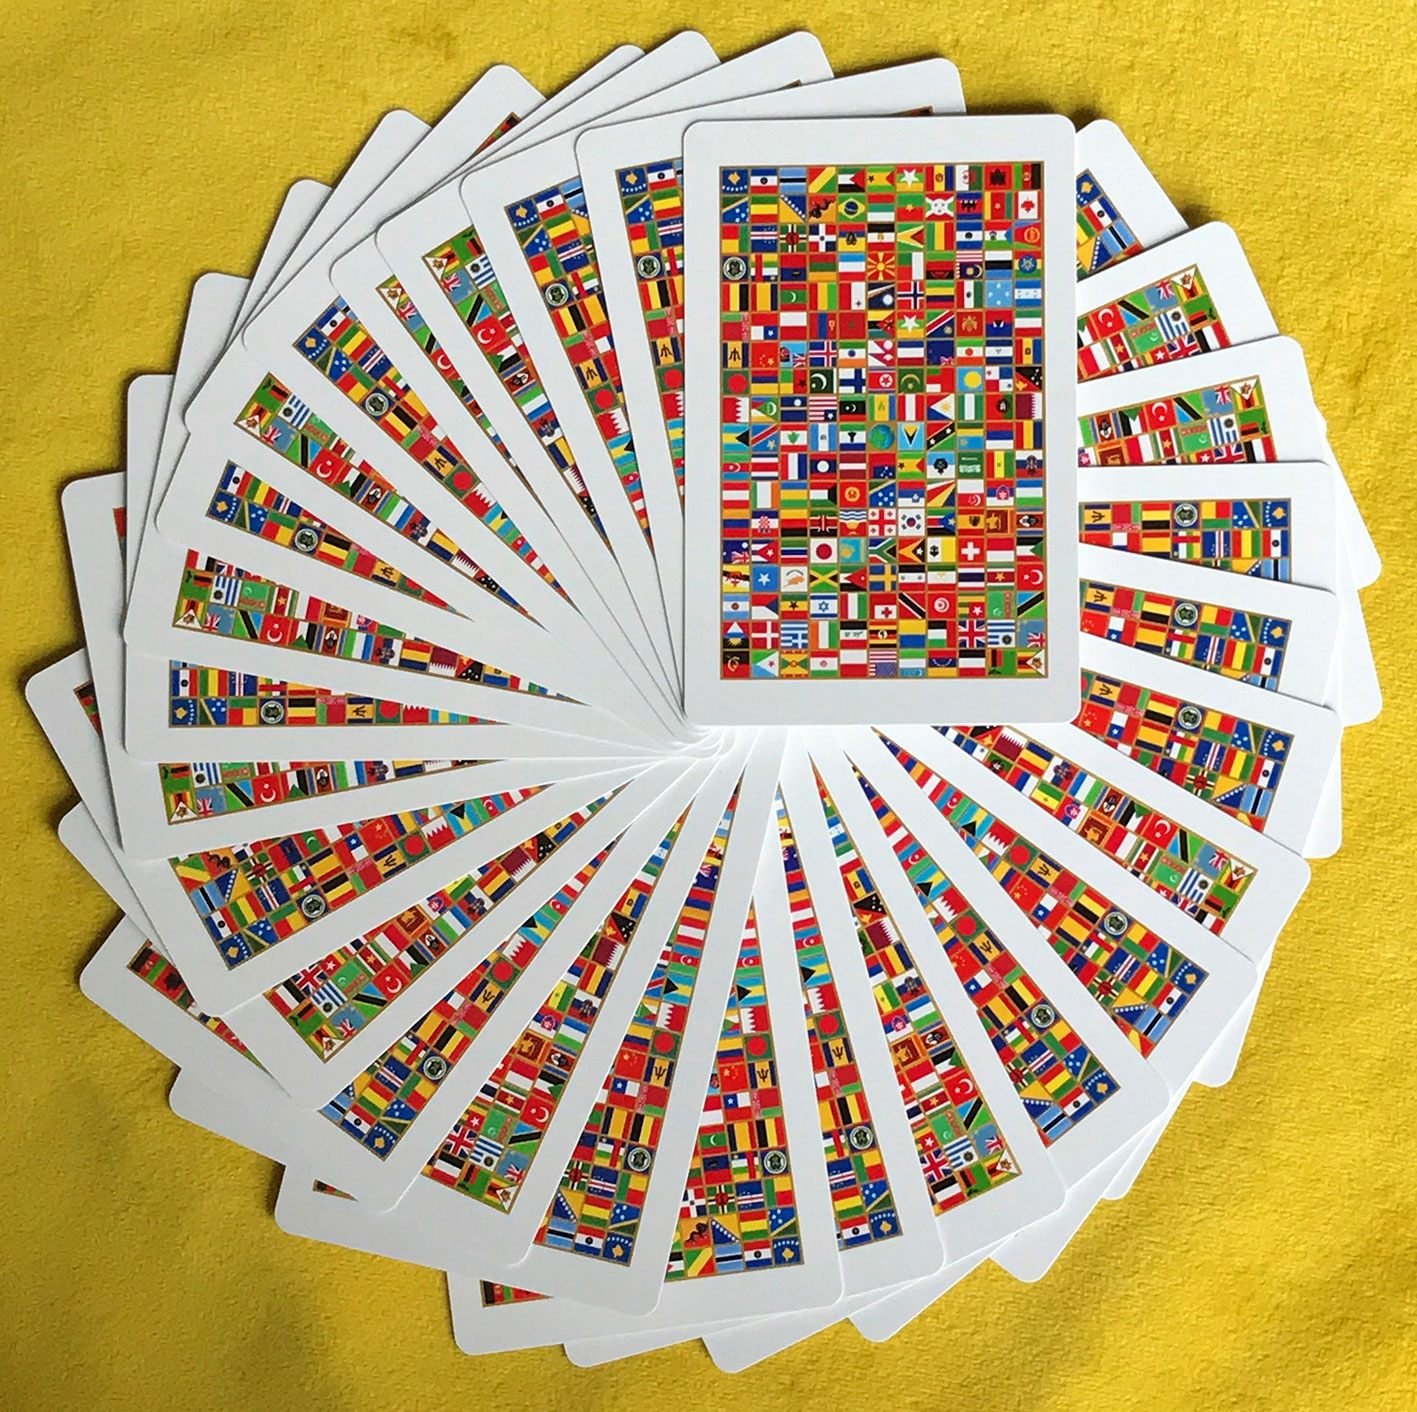 Be Illustrated on a Playing Card – Multicultural Skin Colour Card Deck, Celebrating Diversity Kind Shop 10